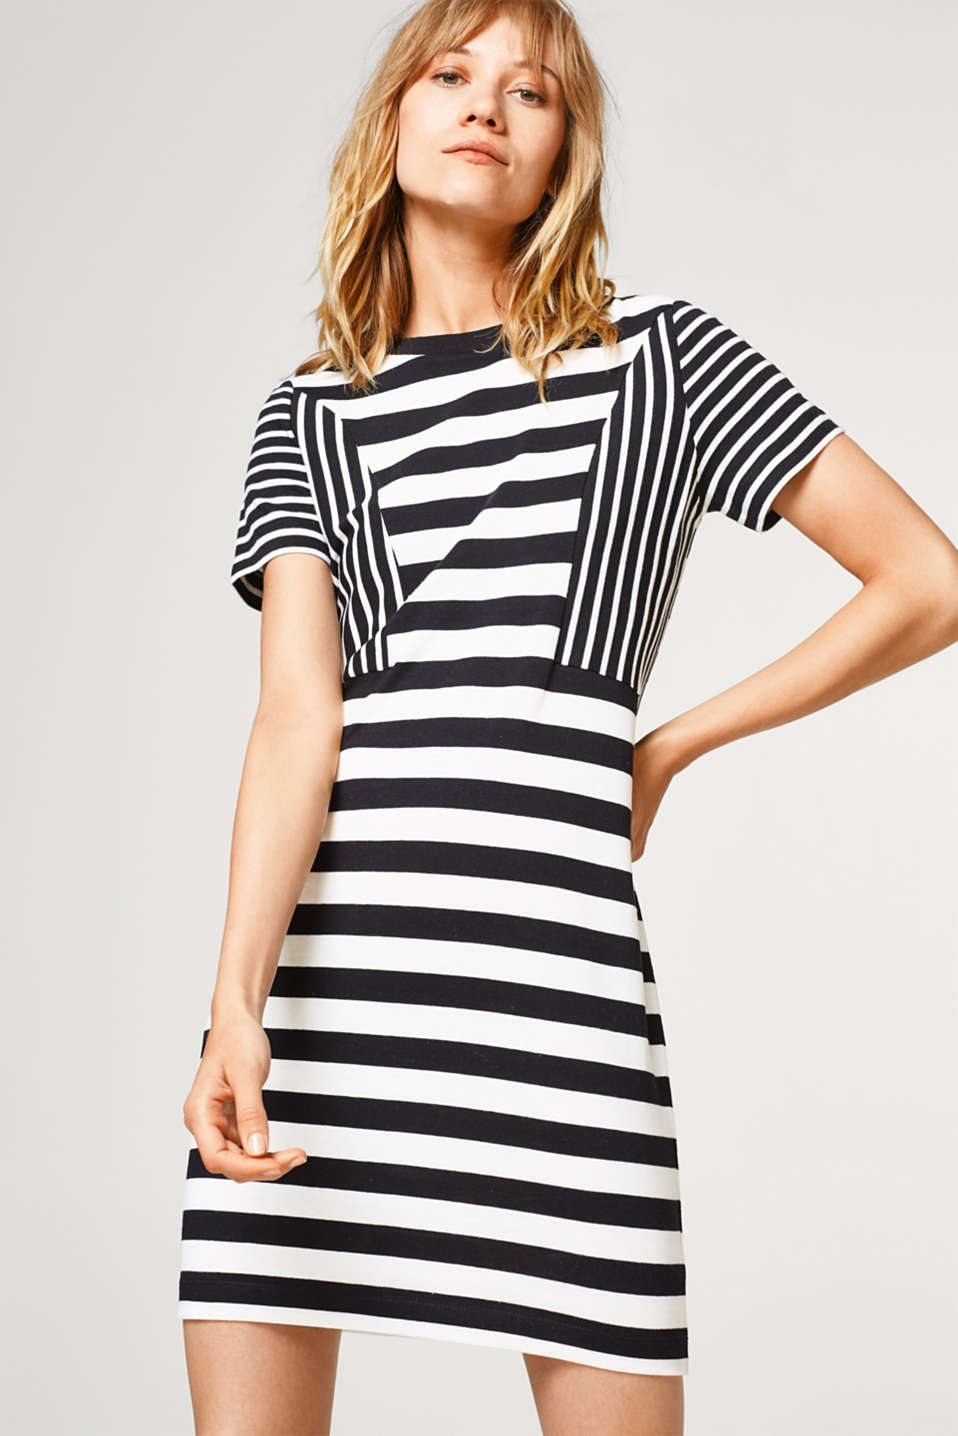 Esprit - 100% cotton knitted dress with fine stripes